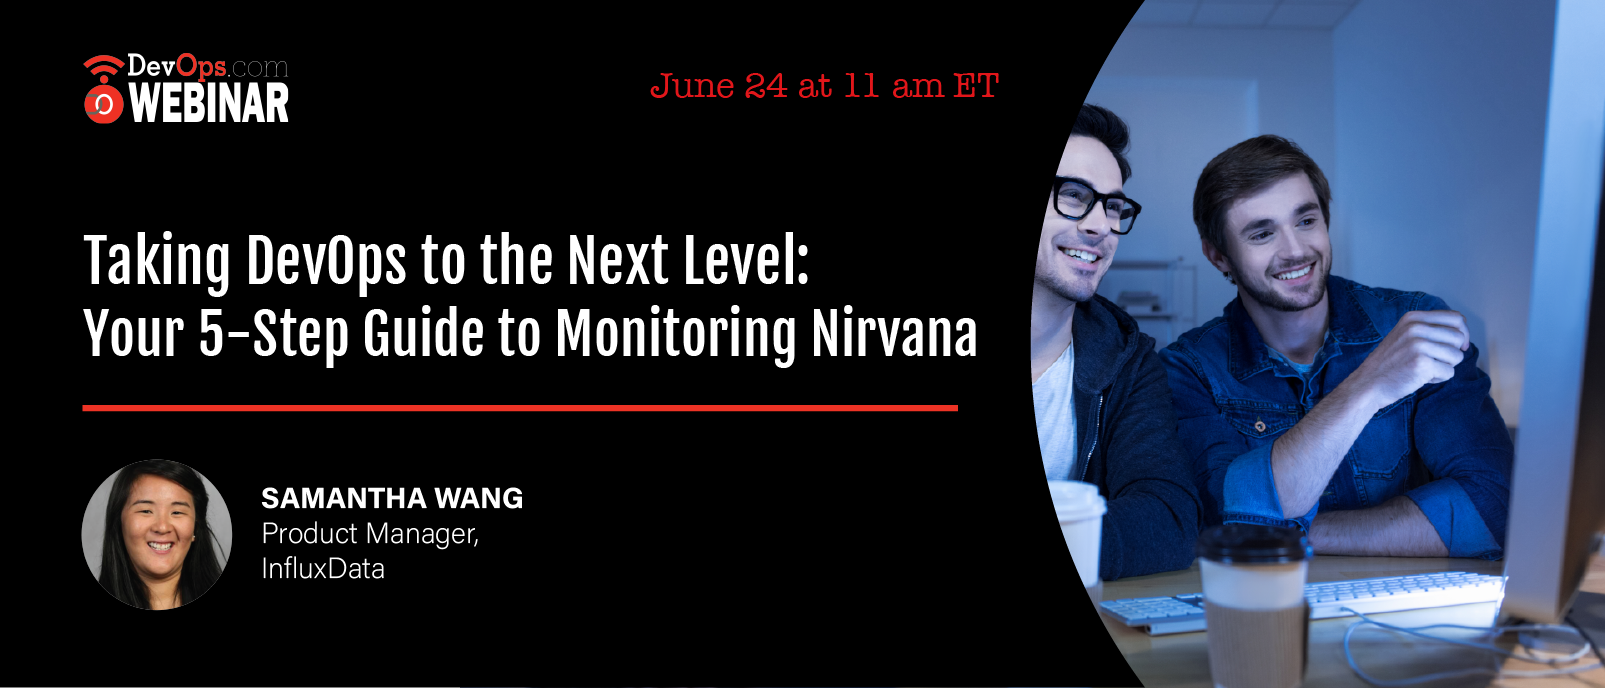 Taking DevOps to the Next Level: Your 5-Step Guide to Monitoring Nirvana